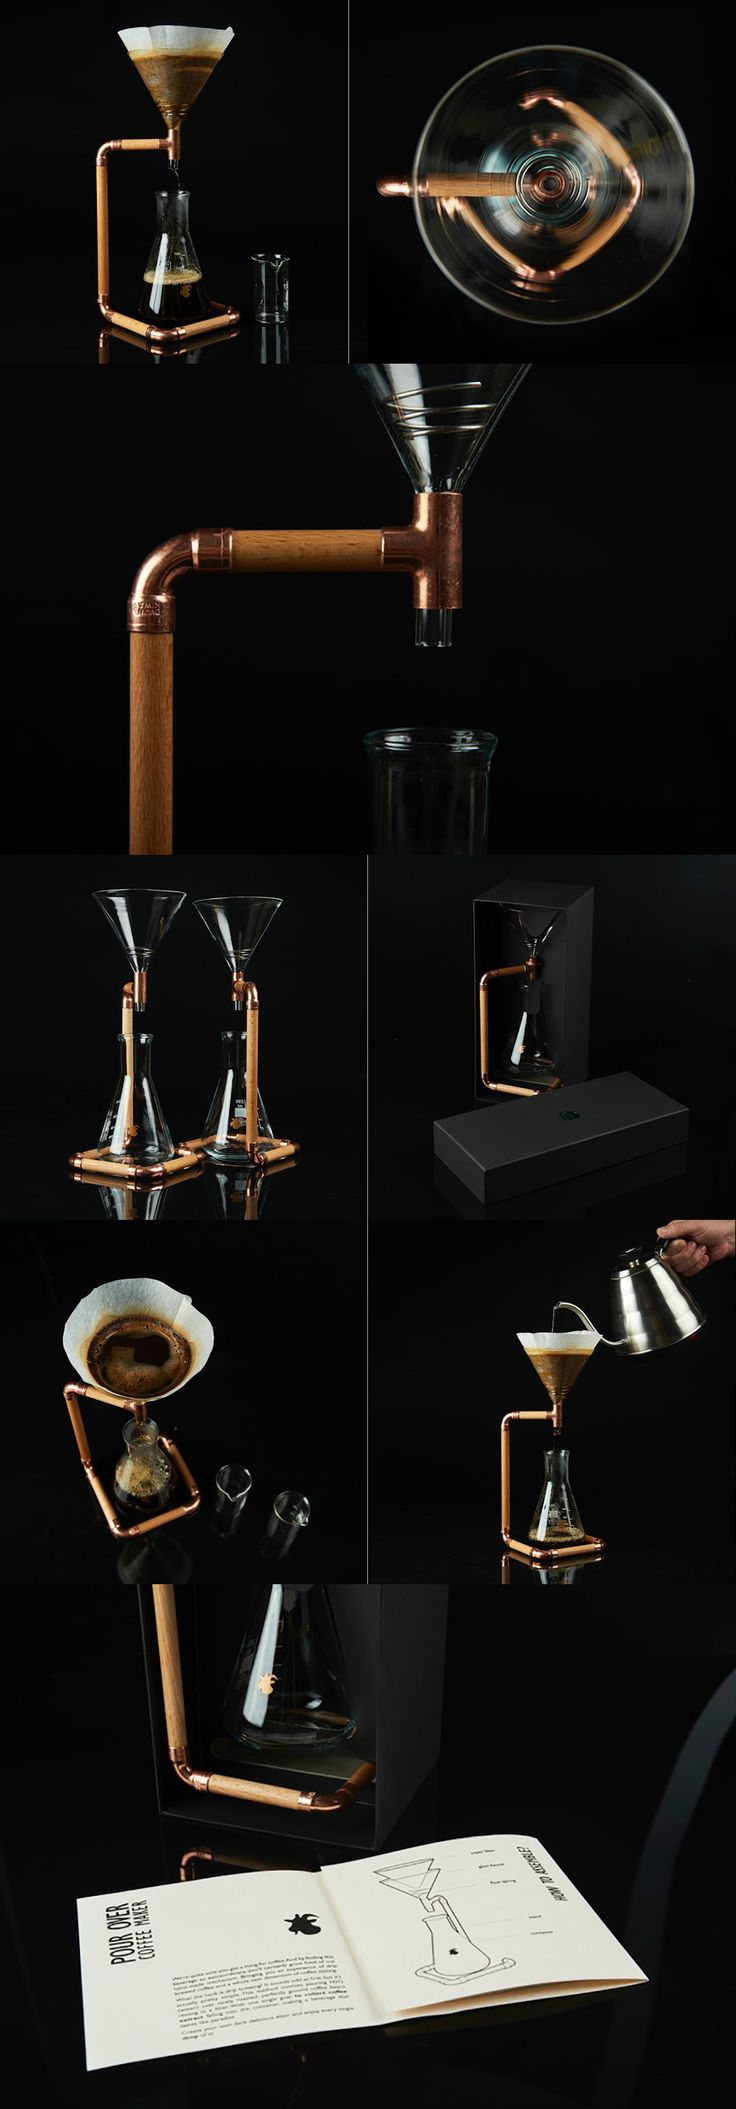 """The G-Drip coffee maker takes inspiration from the """"pour over"""" technique well-known among true coffee connoisseurs. Read Full Story at Yanko Design"""